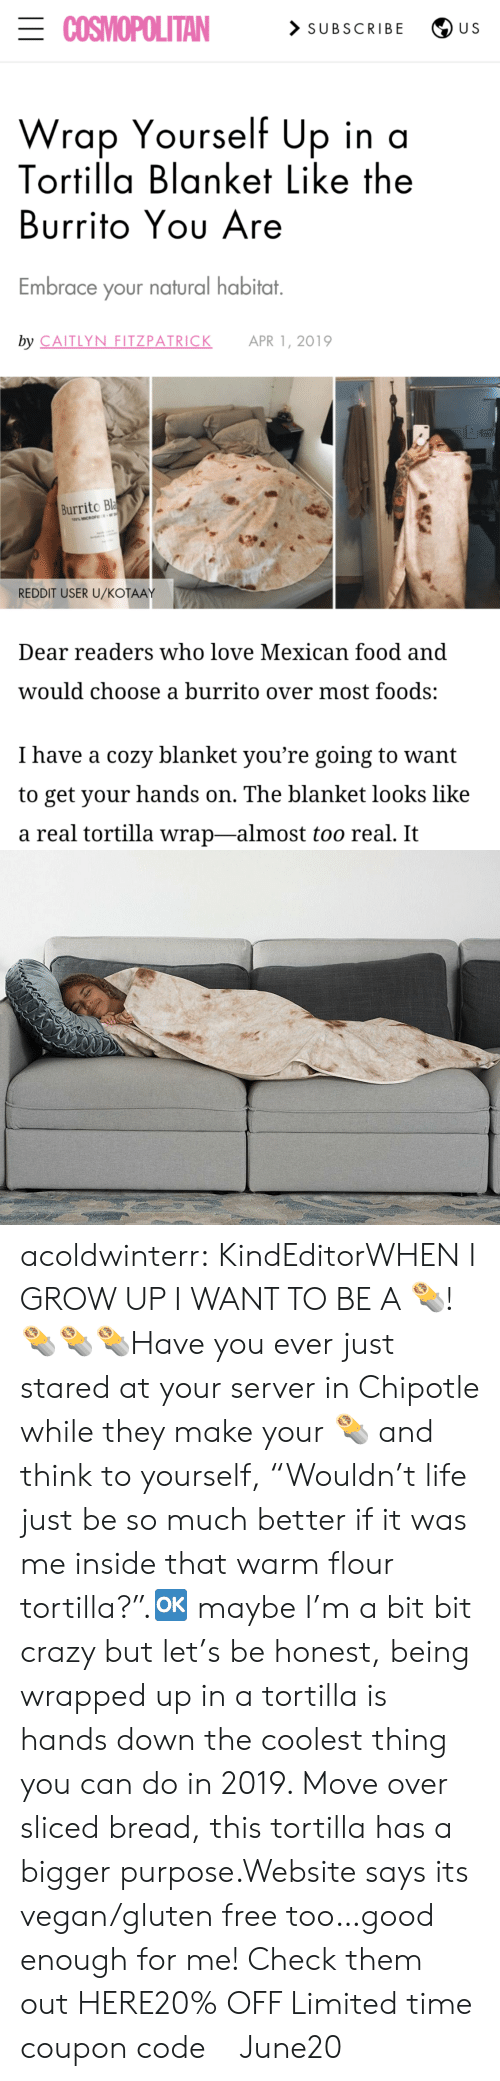 "Chipotle, Crazy, and Food: ECOSMOPOLITAN  > SUBSCRIBE  U S  Wrap Yourself Up in a  Tortilla Blanket Like the  Burrito Yου Are  Embrace your natural habitat.  by CAITLYN FITZPATRICK  APR 1, 2019  Burrito Bla  100% MICROFE  REDDIT USER U/KOŤAAY  Dear readers who love Mexican food and  would choose a burrito over most foods:  I have a cozy blanket you're going to want  to get your hands on. The blanket looks like  a real tortilla wrap-almost too real. It acoldwinterr:  KindEditorWHEN I GROW UP I WANT TO BE A 🌯! 🌯🌯🌯Have you ever just stared at your server in Chipotle while they make your 🌯 and think to yourself, ""Wouldn't life just be so much better if it was me inside that warm flour tortilla?"".🆗 maybe I'm a bit bit crazy but let's be honest, being wrapped up in a tortilla is hands down the coolest thing you can do in 2019. Move over sliced bread, this tortilla has a bigger purpose.Website says its vegan/gluten free too…good enough for me! Check them out HERE20% OFF Limited time coupon code : June20"